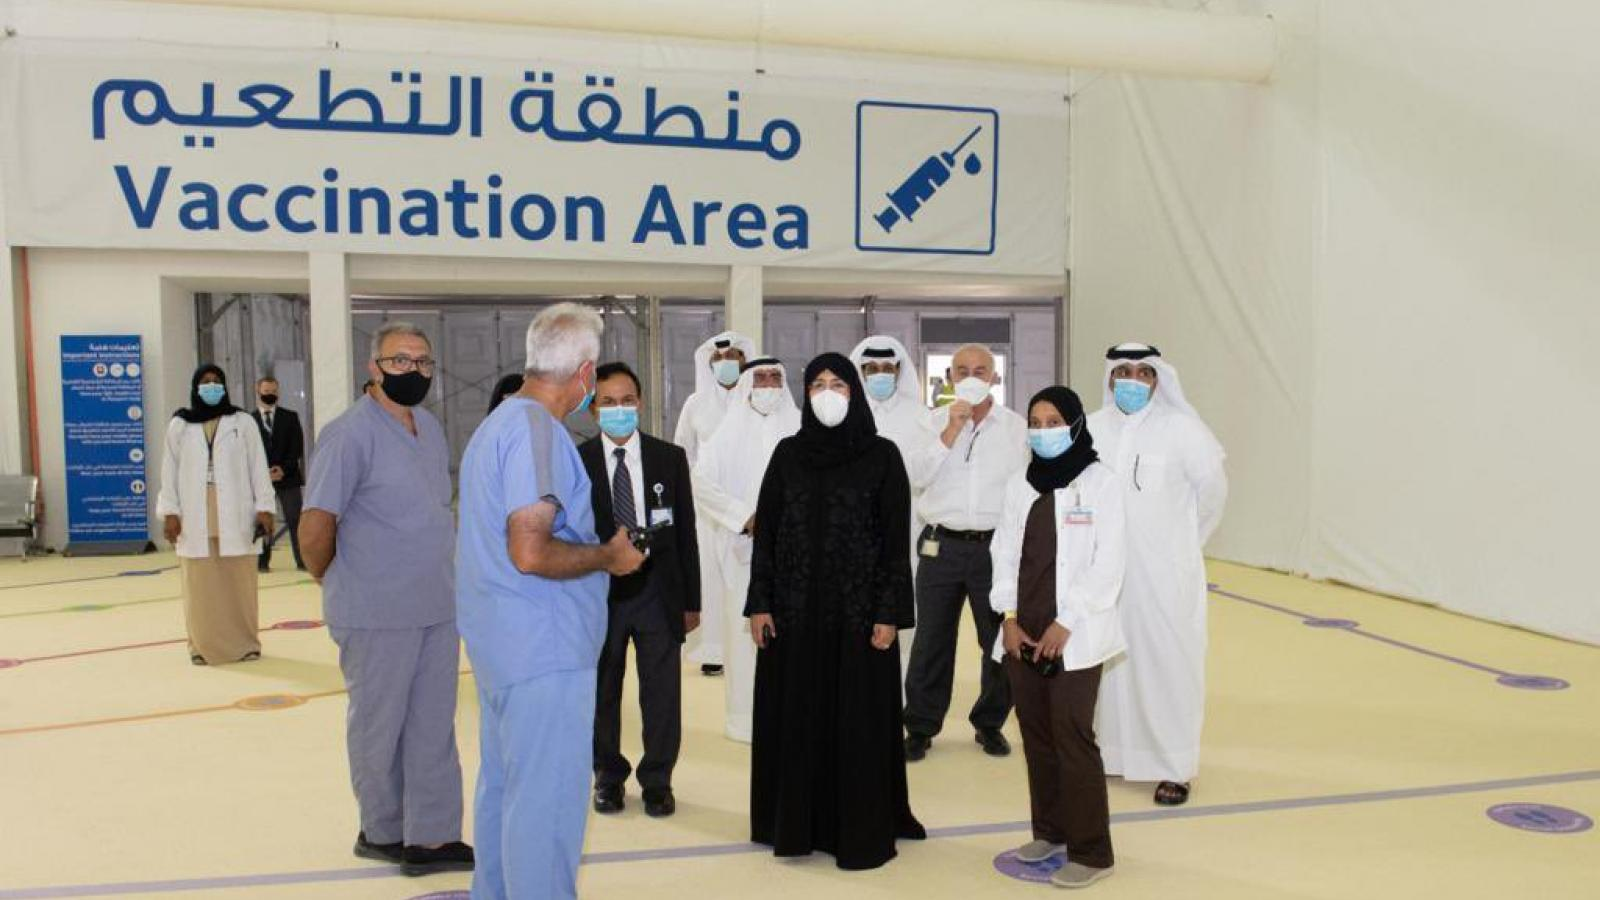 Minister of Public Health visits new vaccination center for business and industry sector